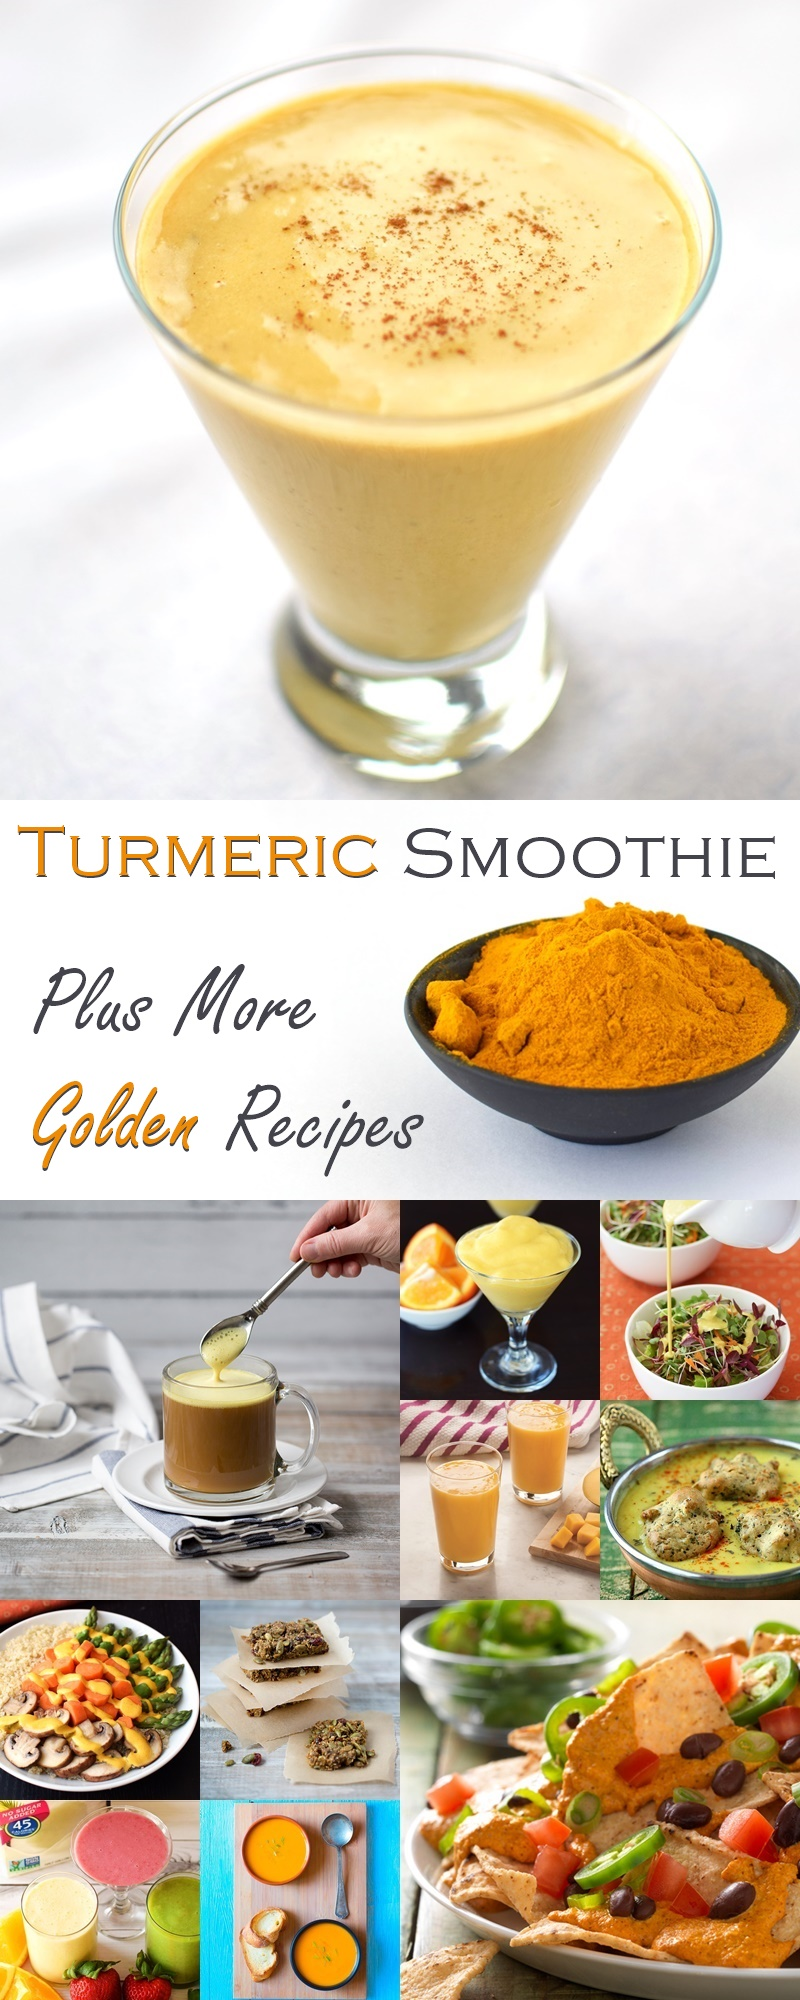 Everyday Turmeric Smoothie Recipe + 10 More Dairy-Free, Plant-Based Golden Recipes